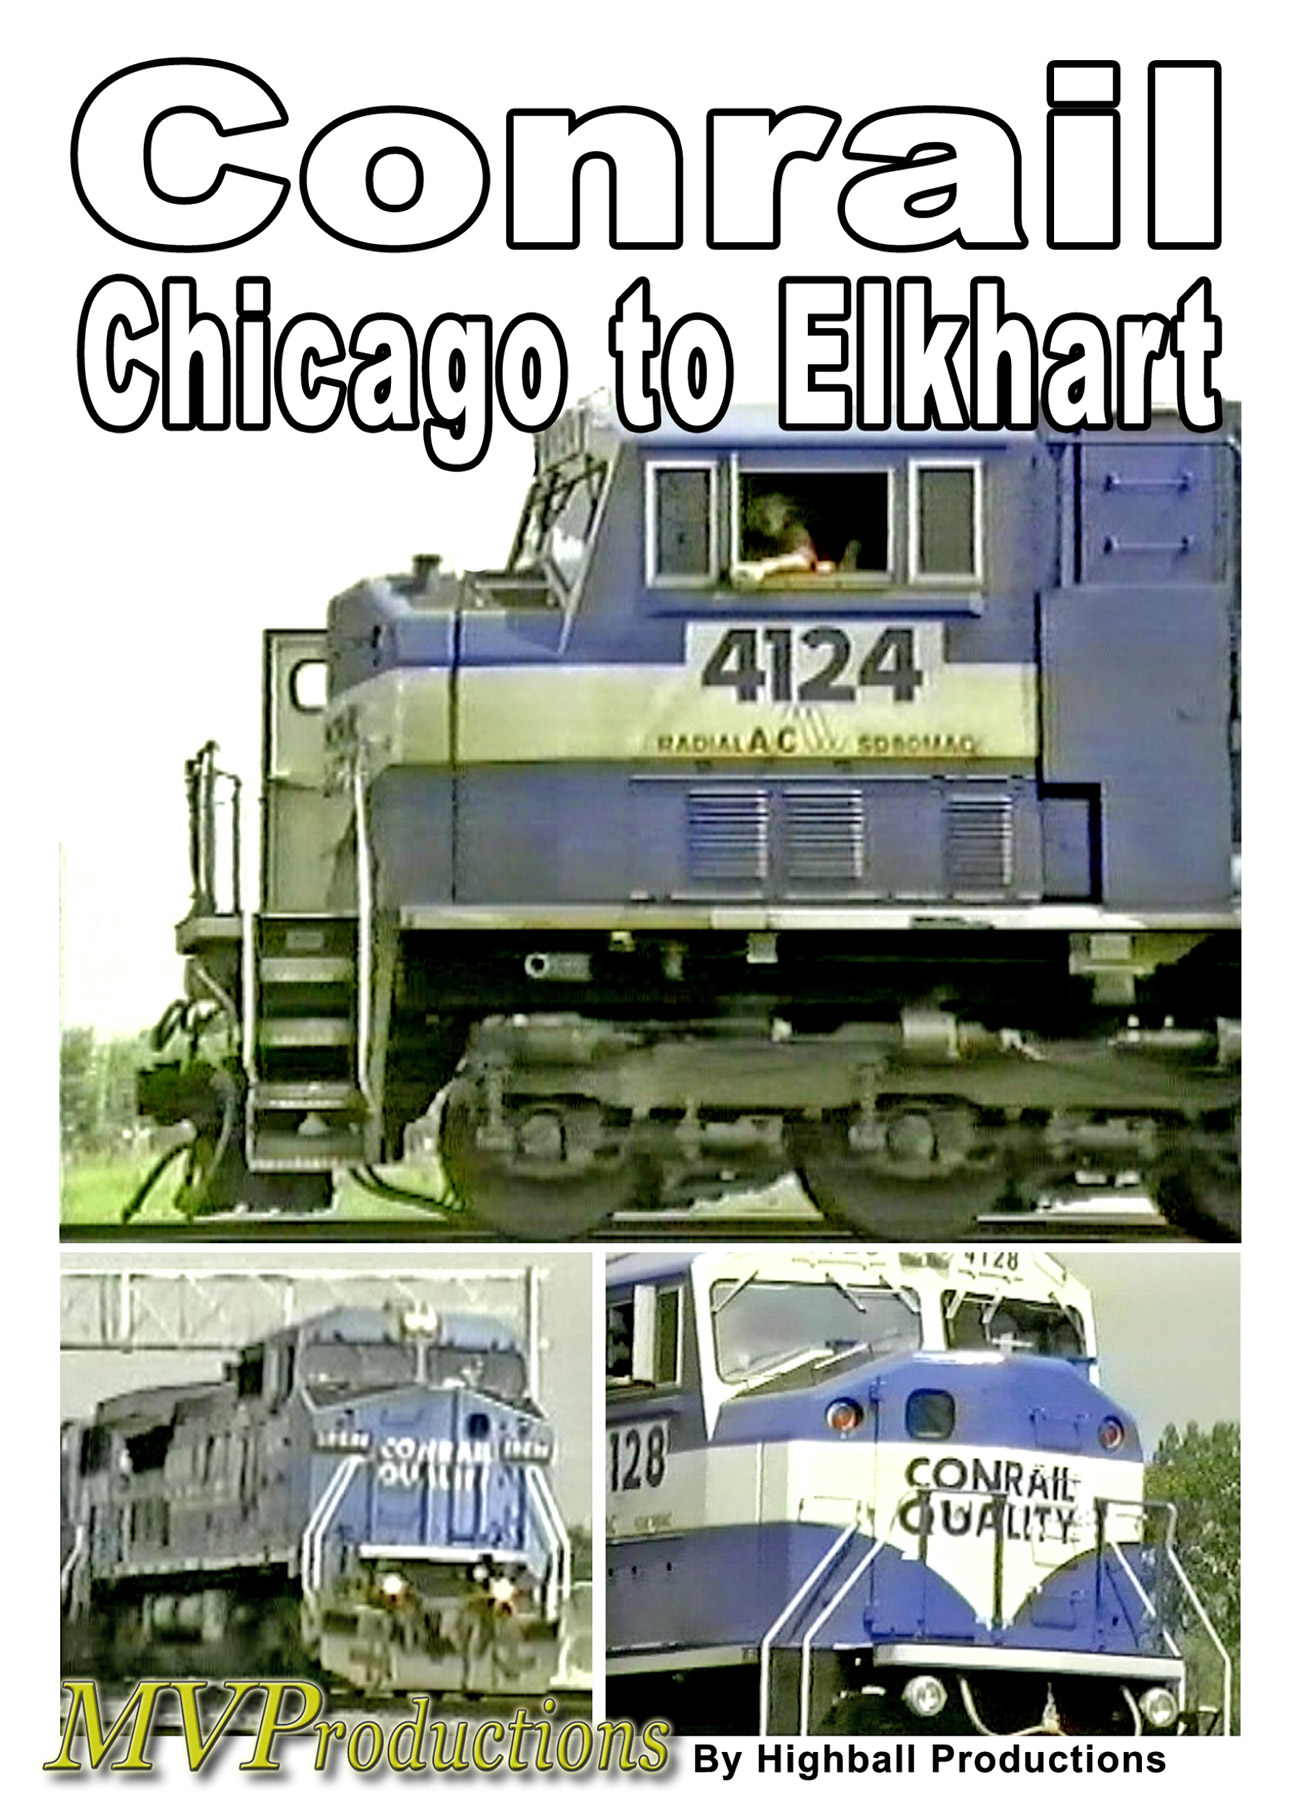 Conrail Chicago to Elkhart Midwest Video Productions MVCCE 601577880240